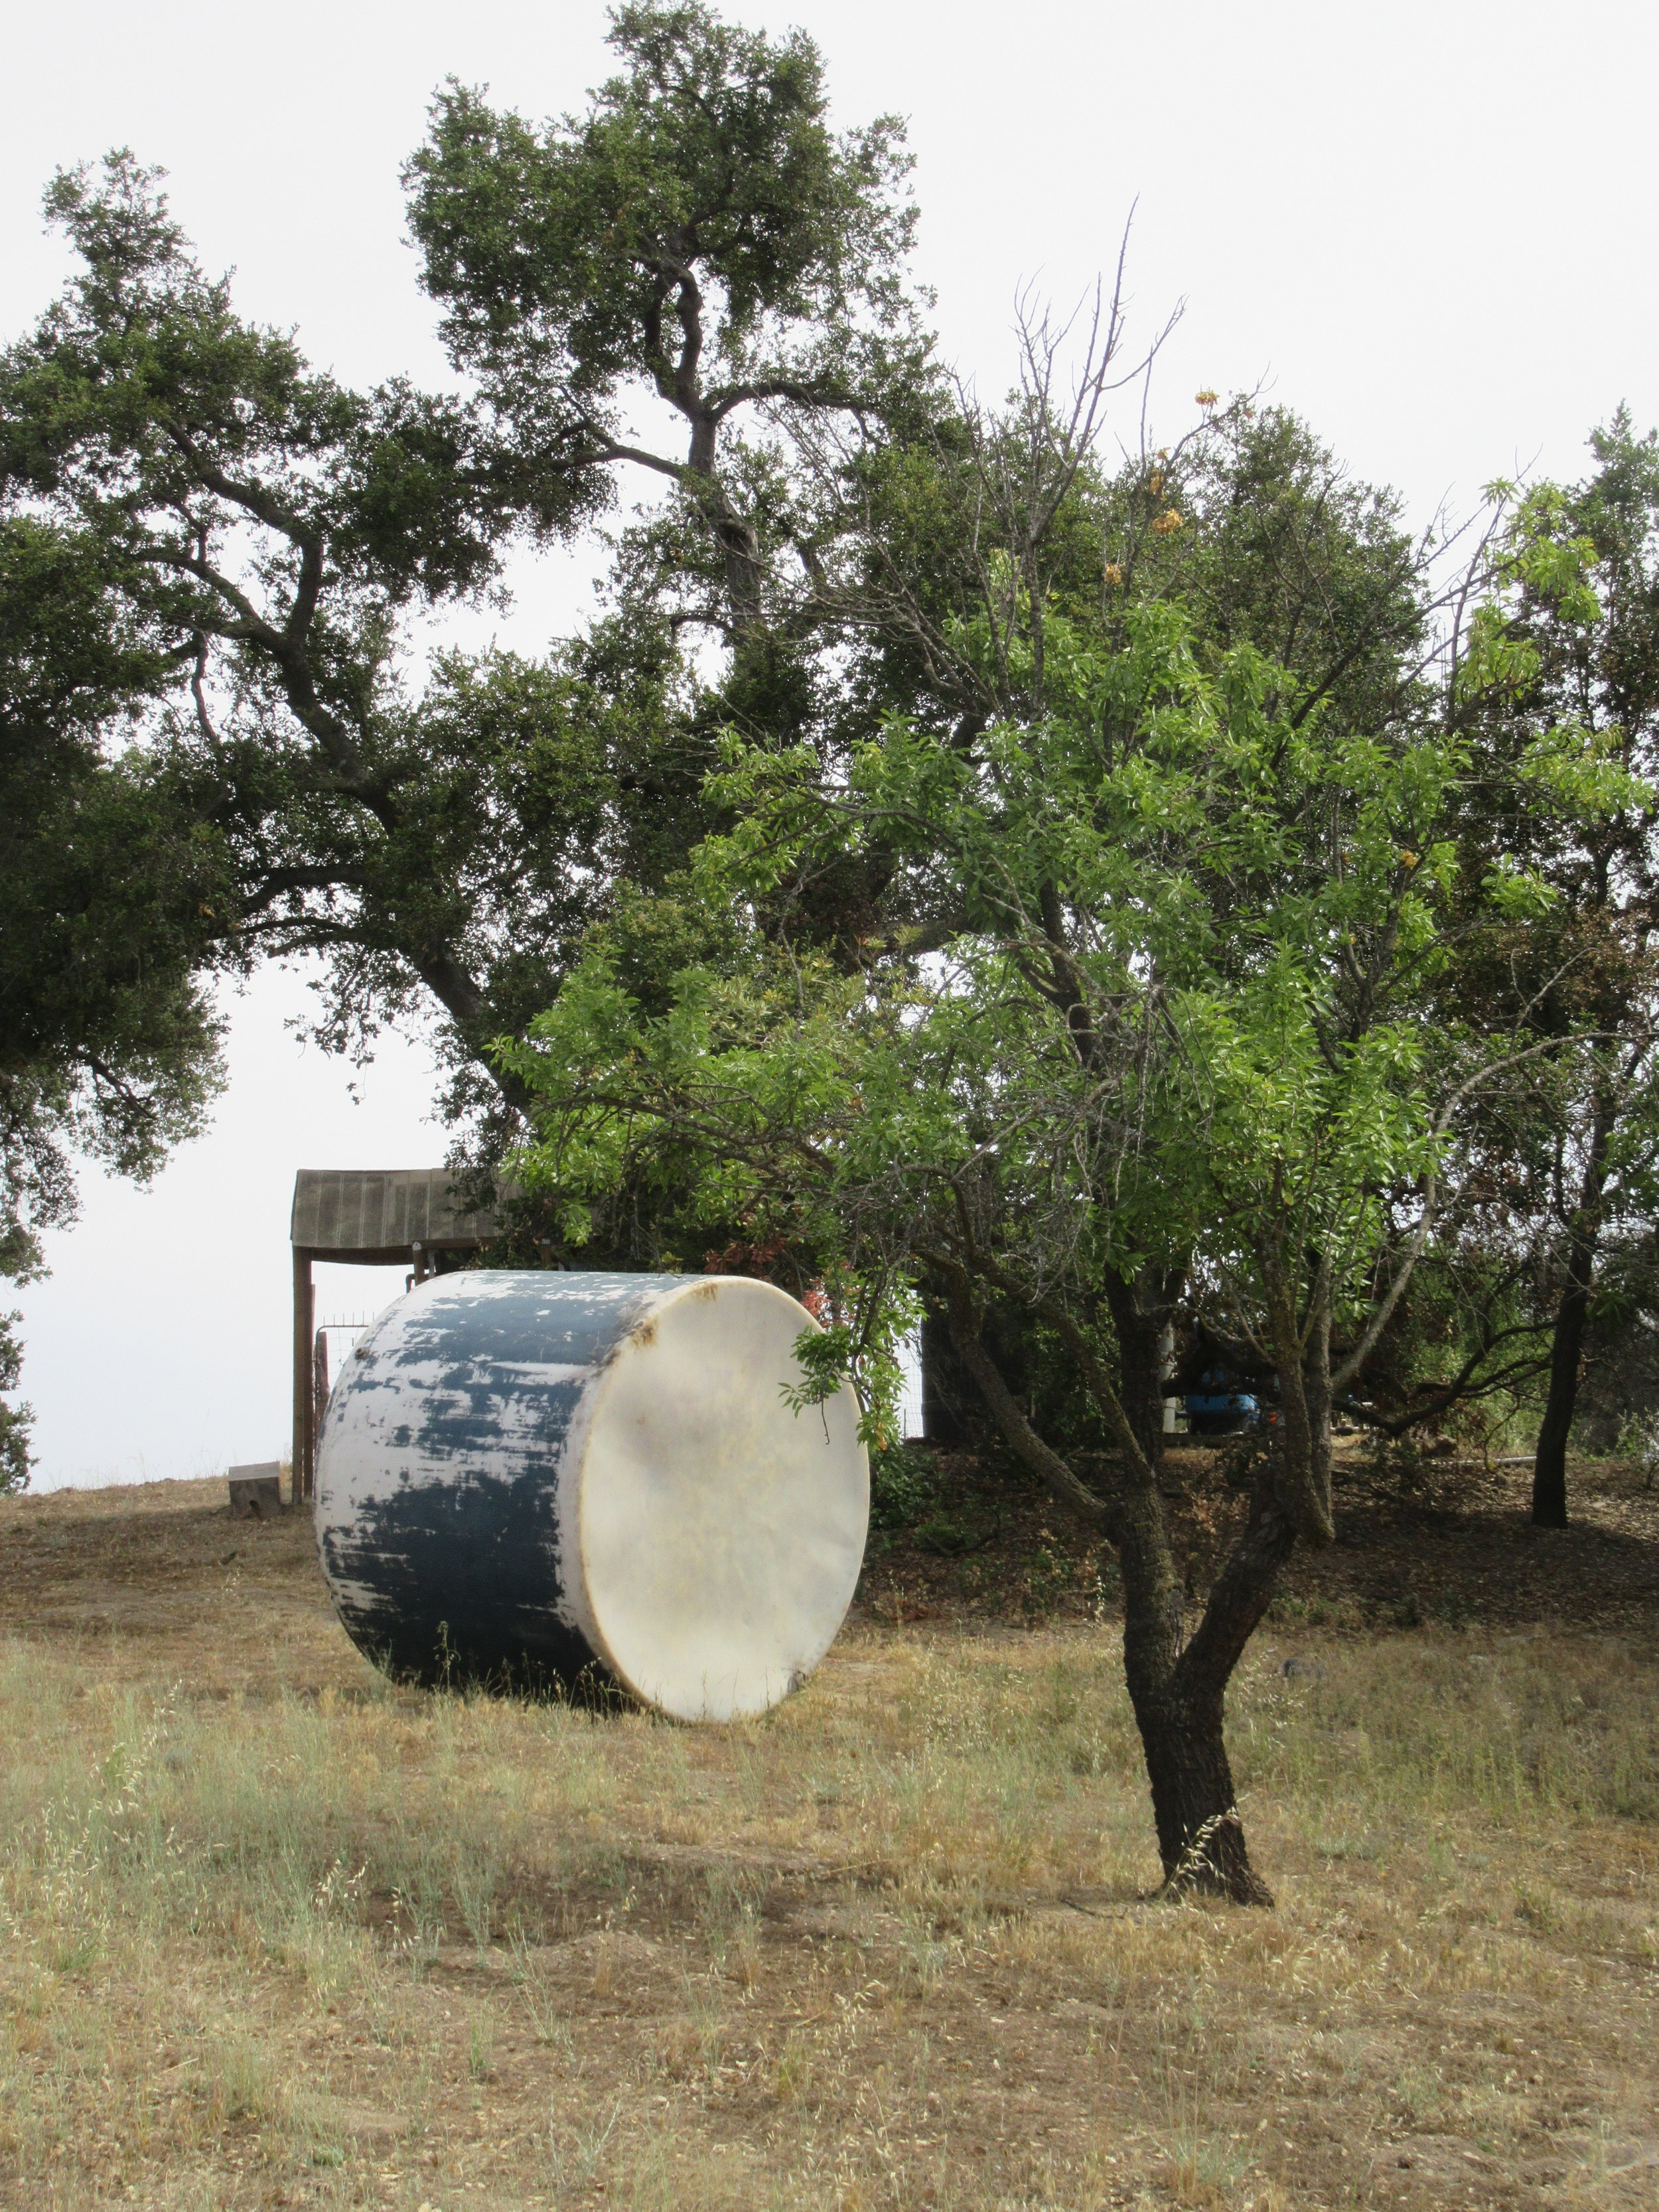 THE OLD agricultural tank waiting to be cut up and disposed of. (Photo: Sam Ervin, July 9, 2018)